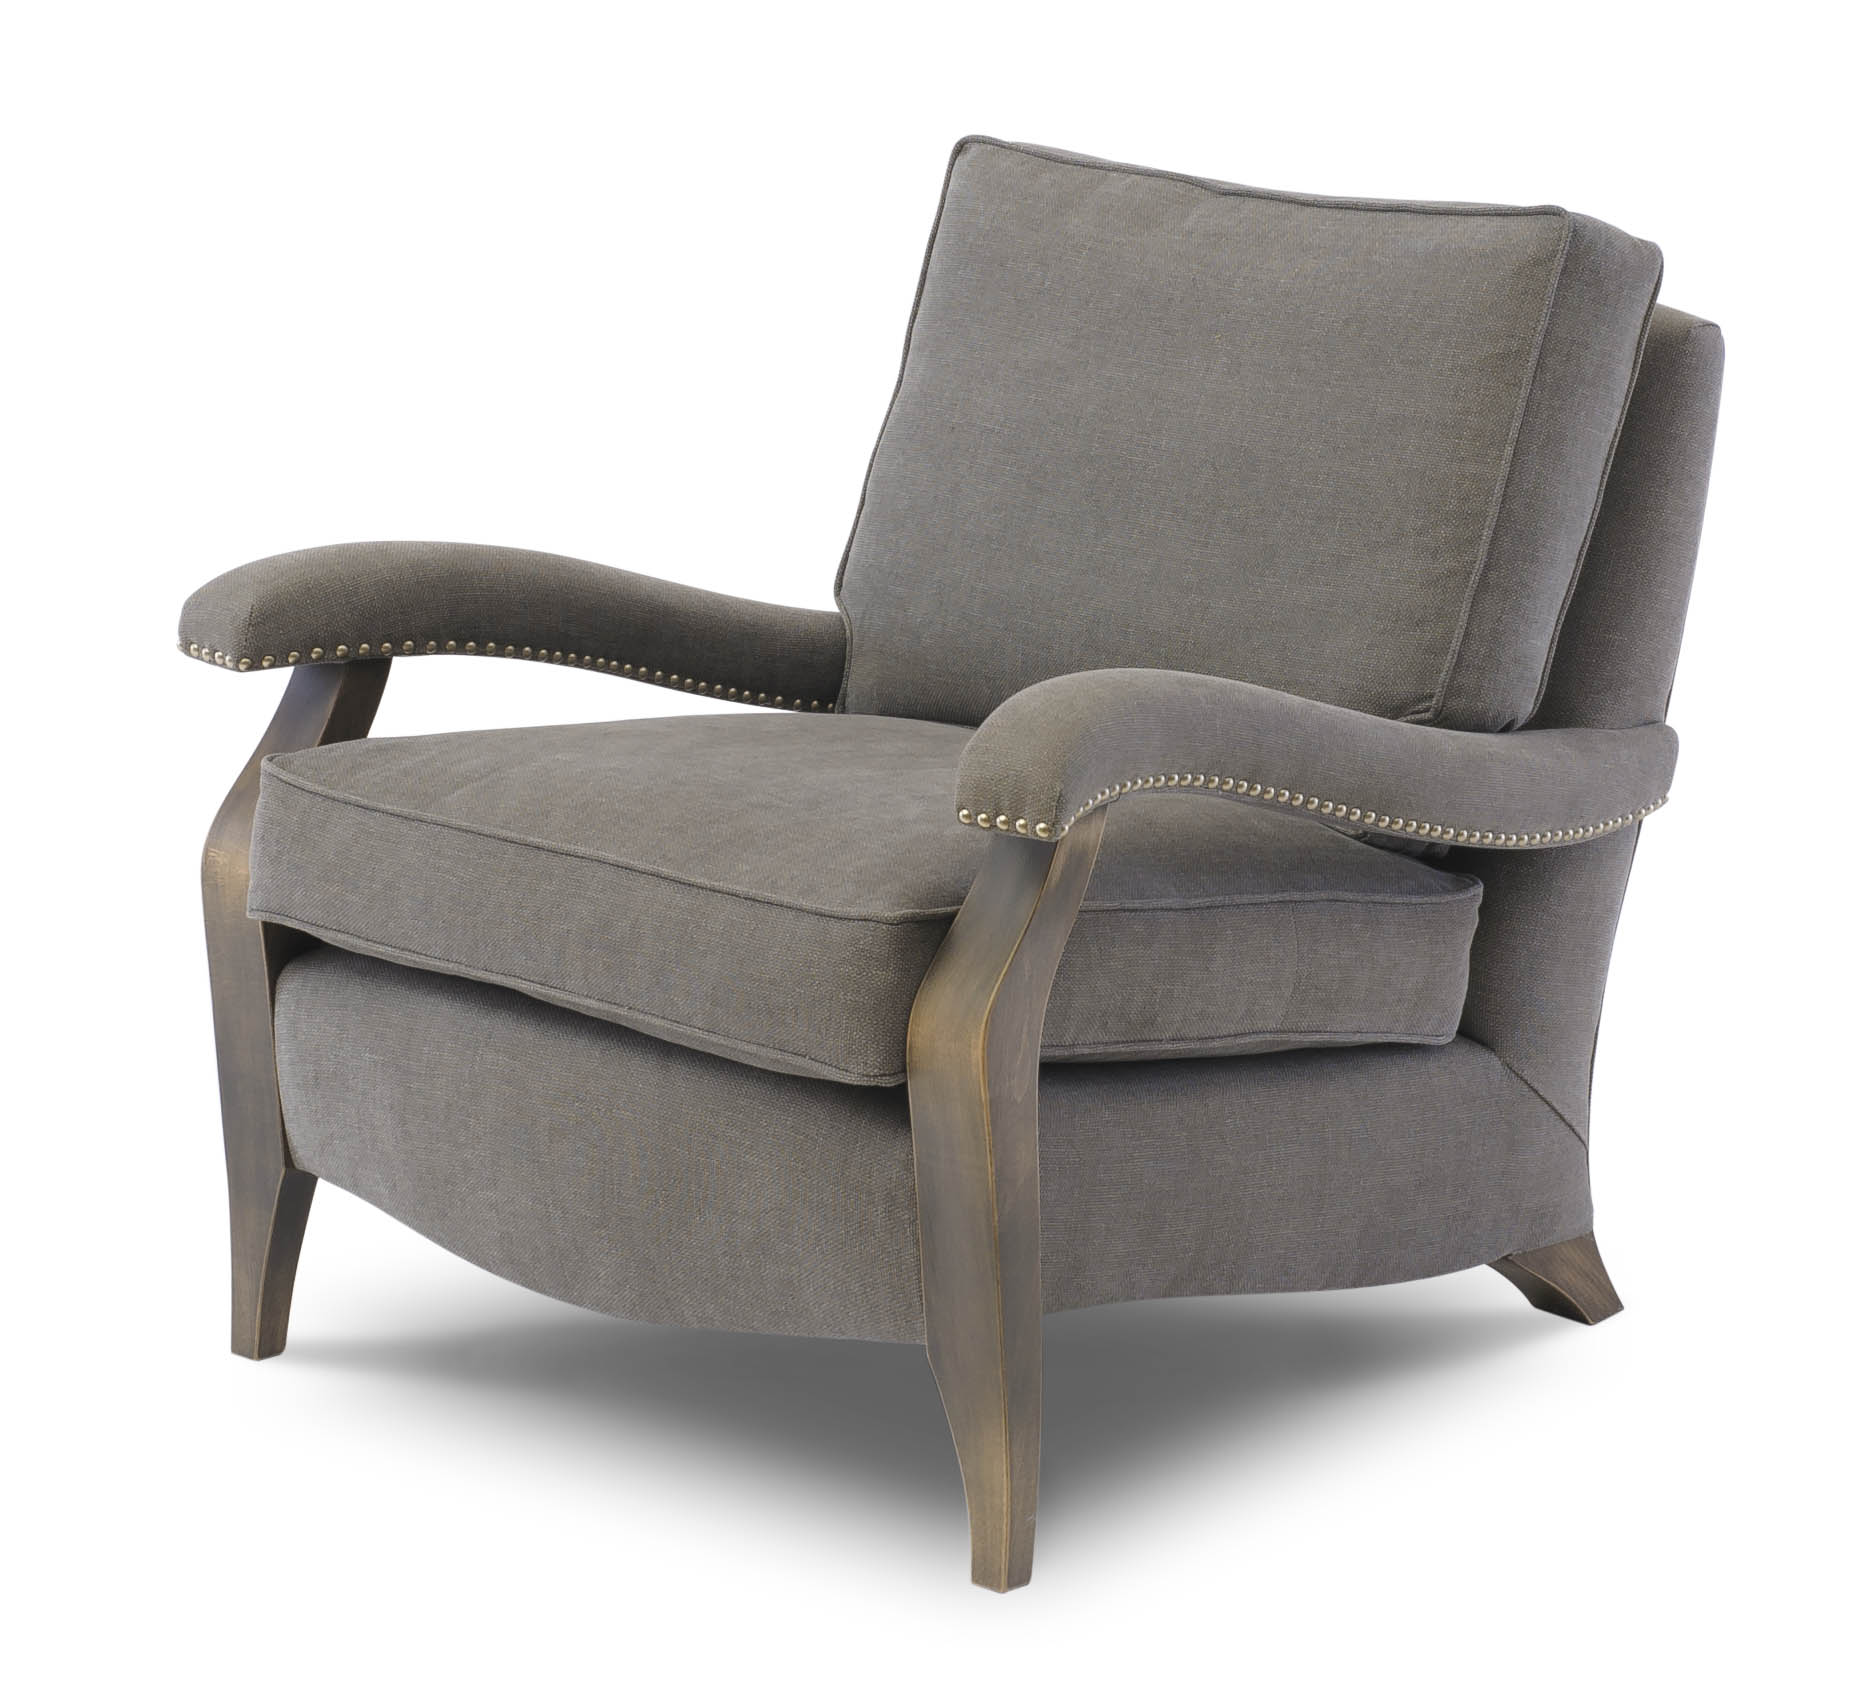 Willoughby Chair-23.jpg